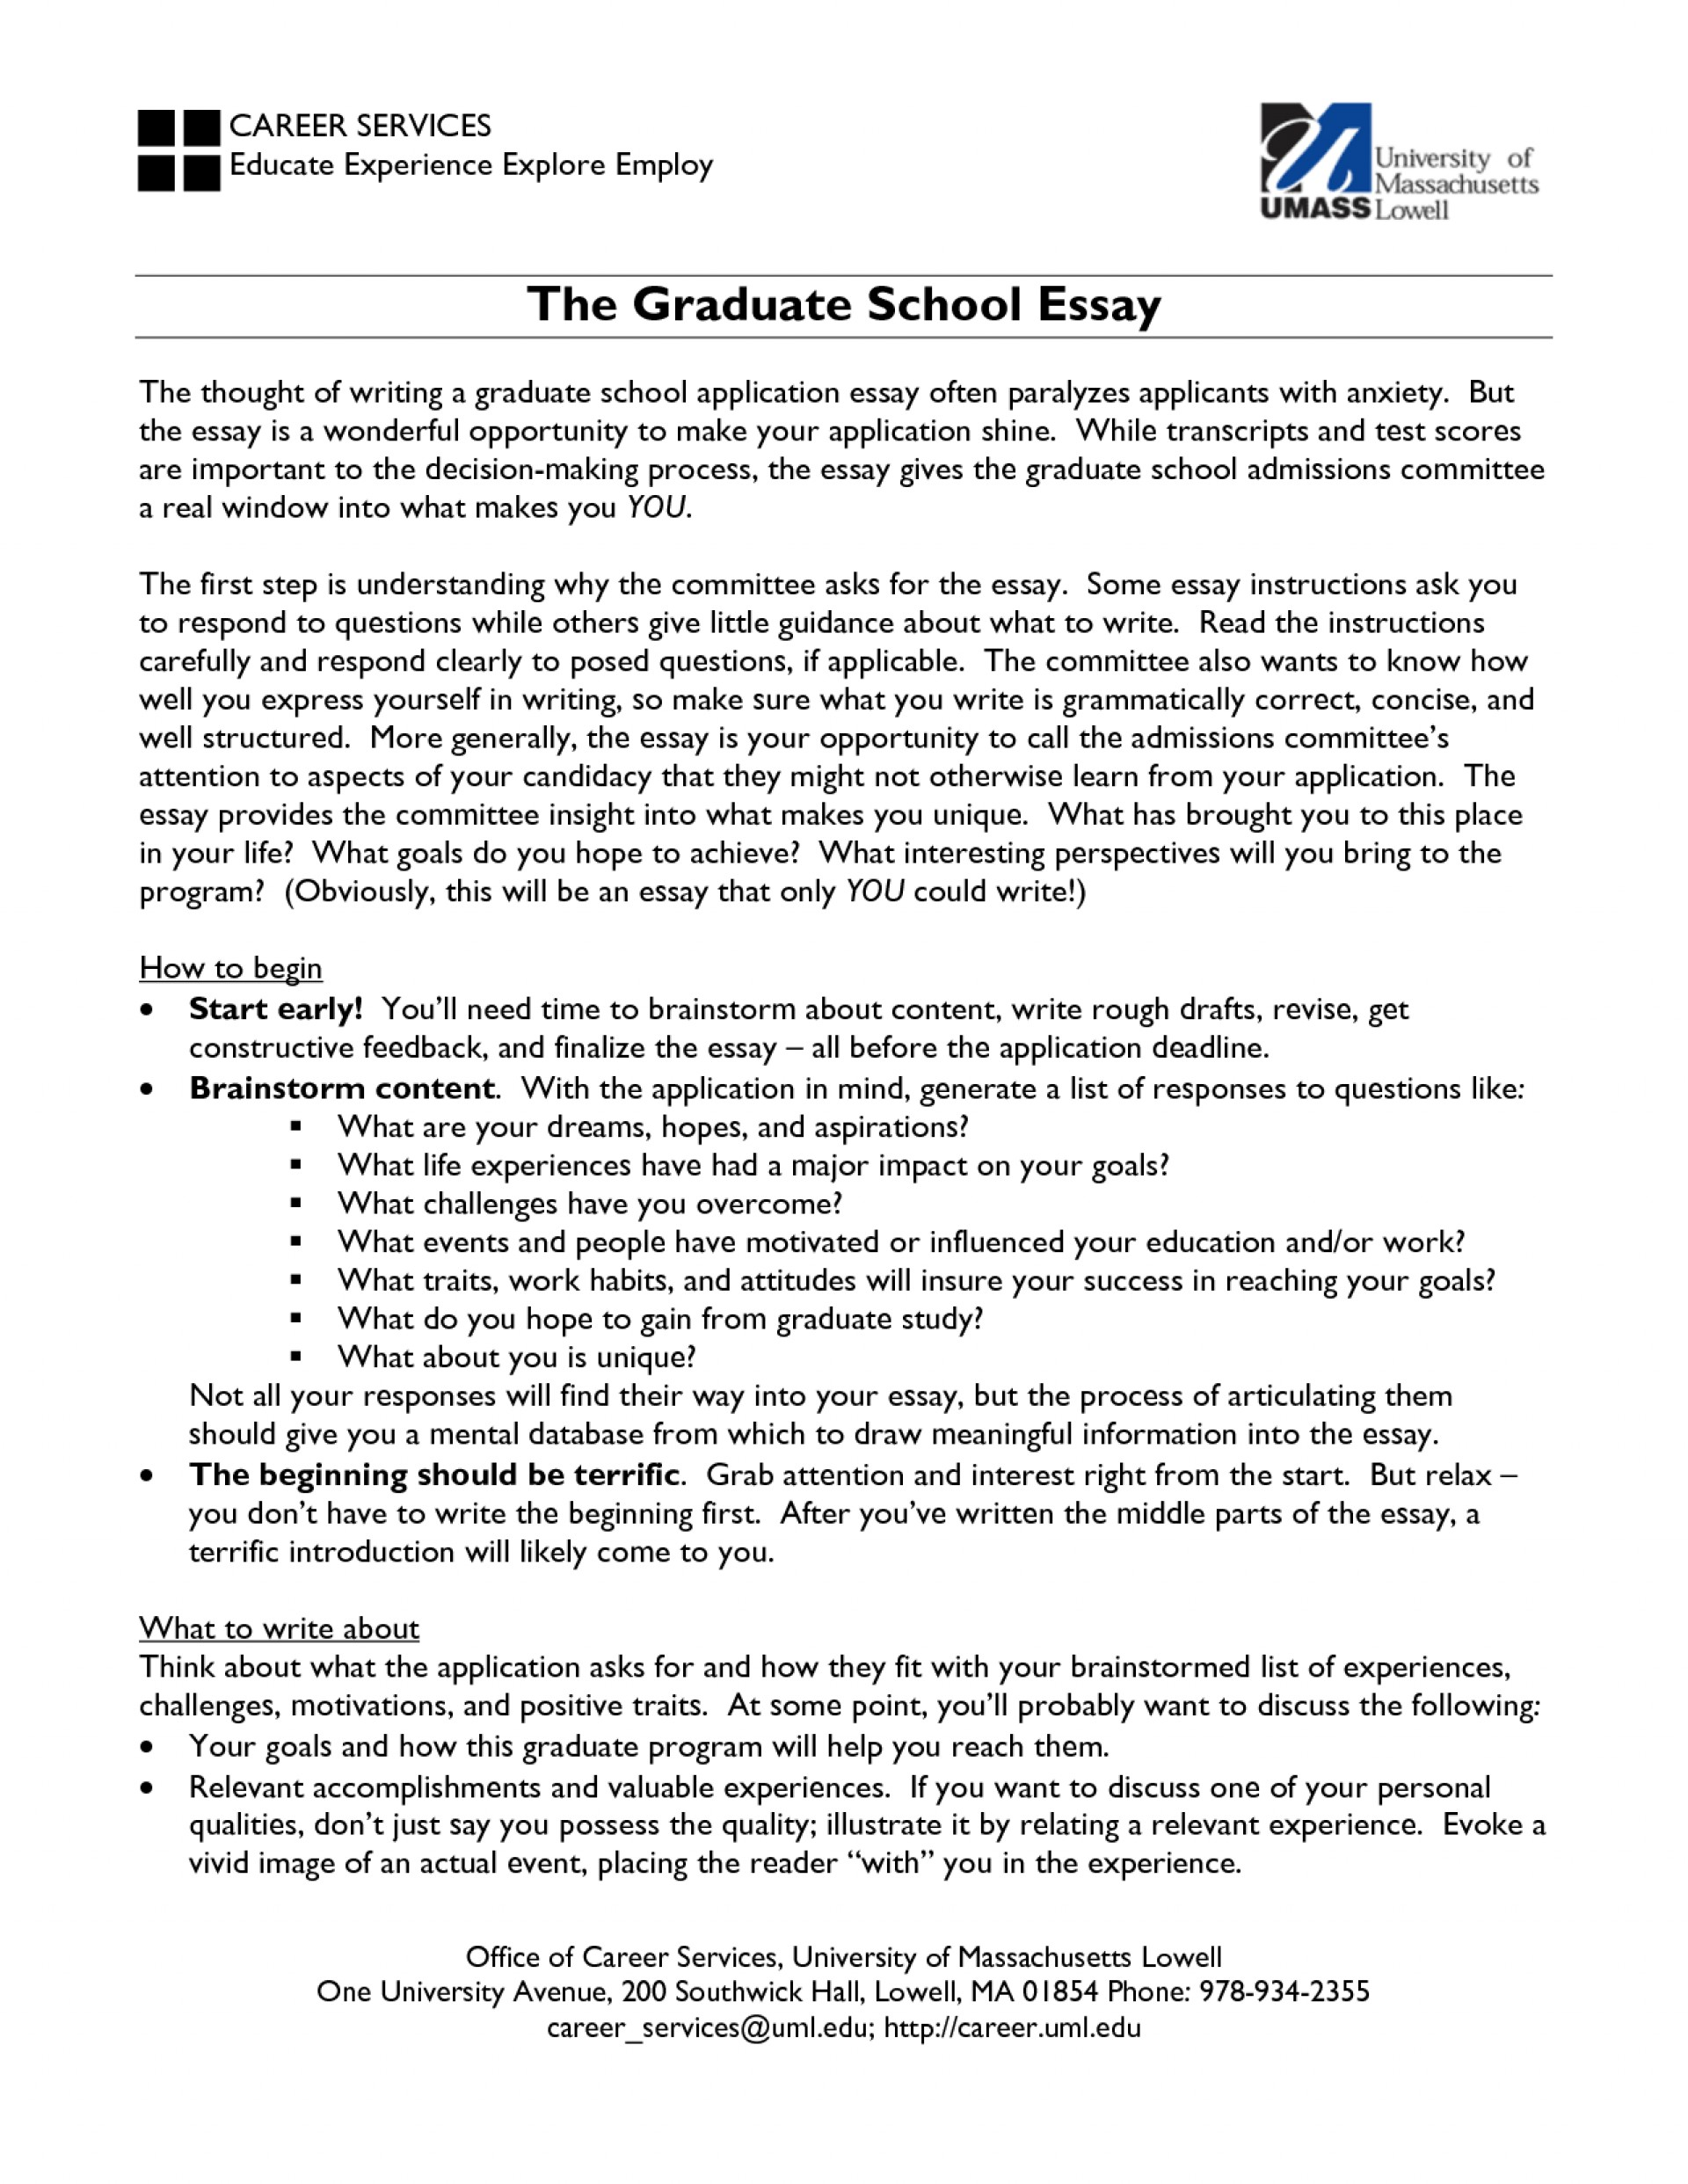 015 Essay Example 36nyax20x5 Excellent Graduation Sample High School Essays For 8th Grade 1920